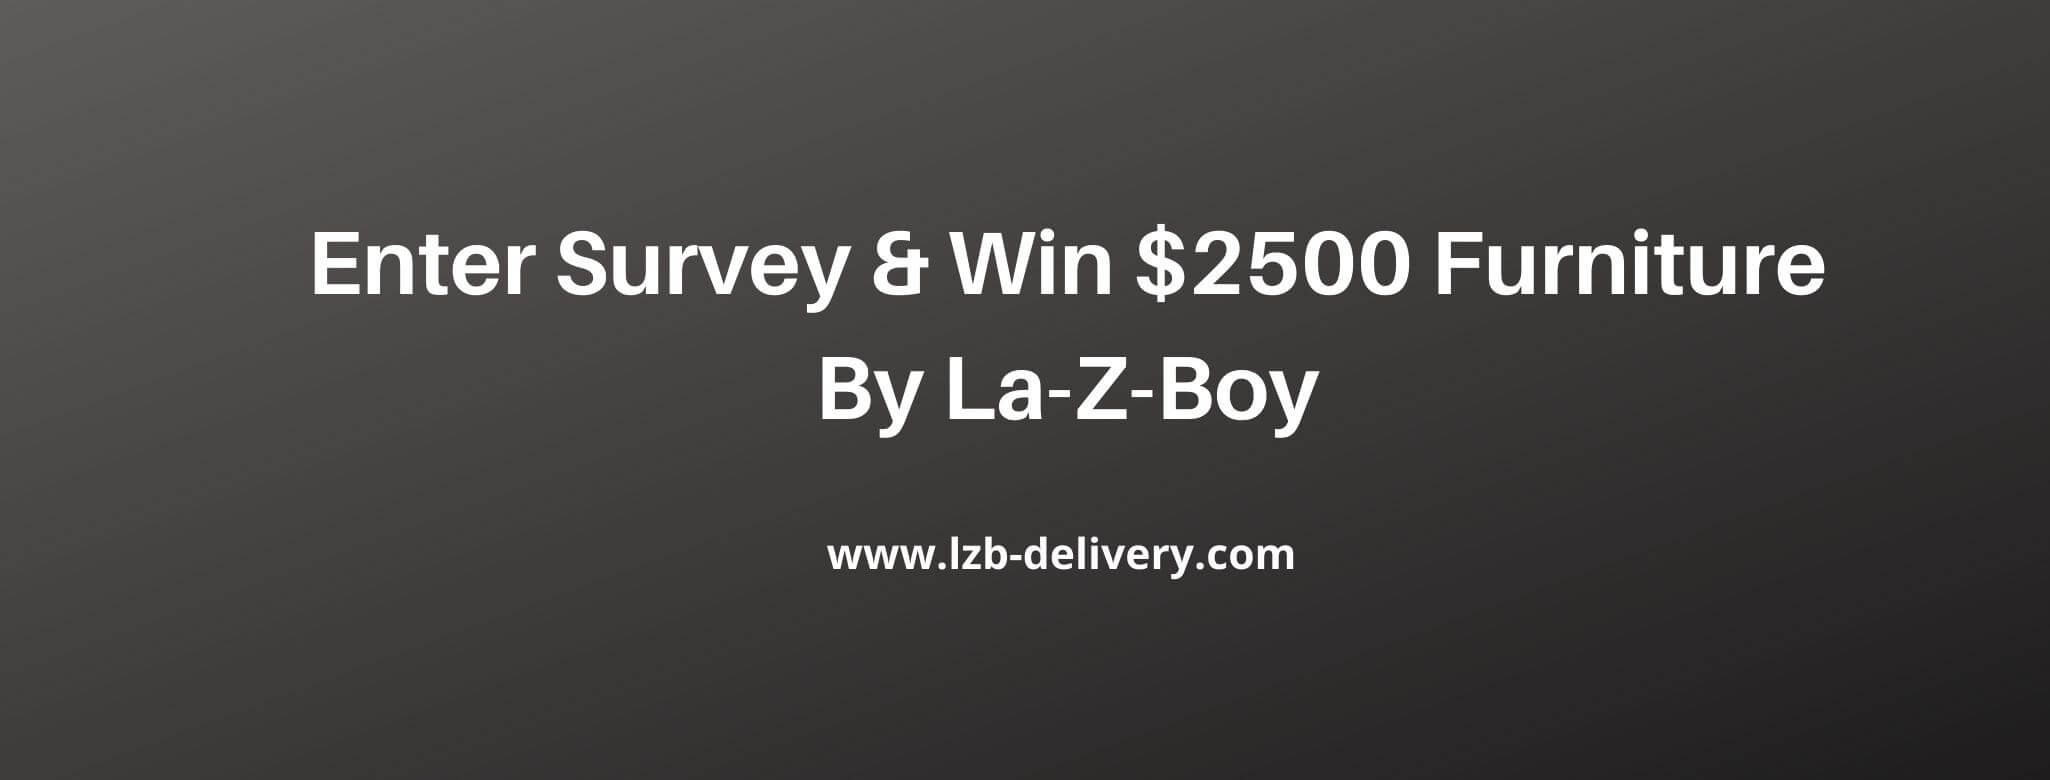 www.lzb-delivery.com